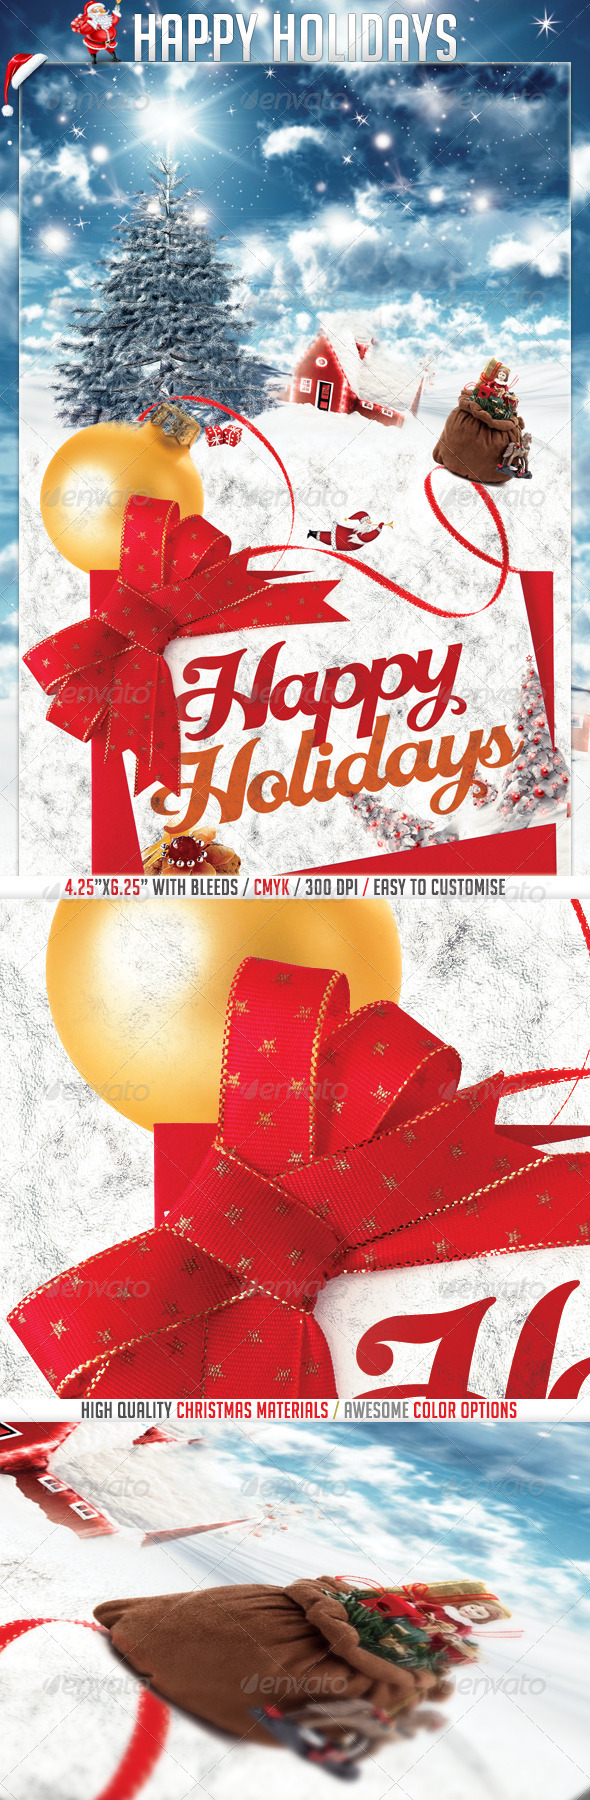 GraphicRiver Happy Holidays Flyer Invitation Template 3415360